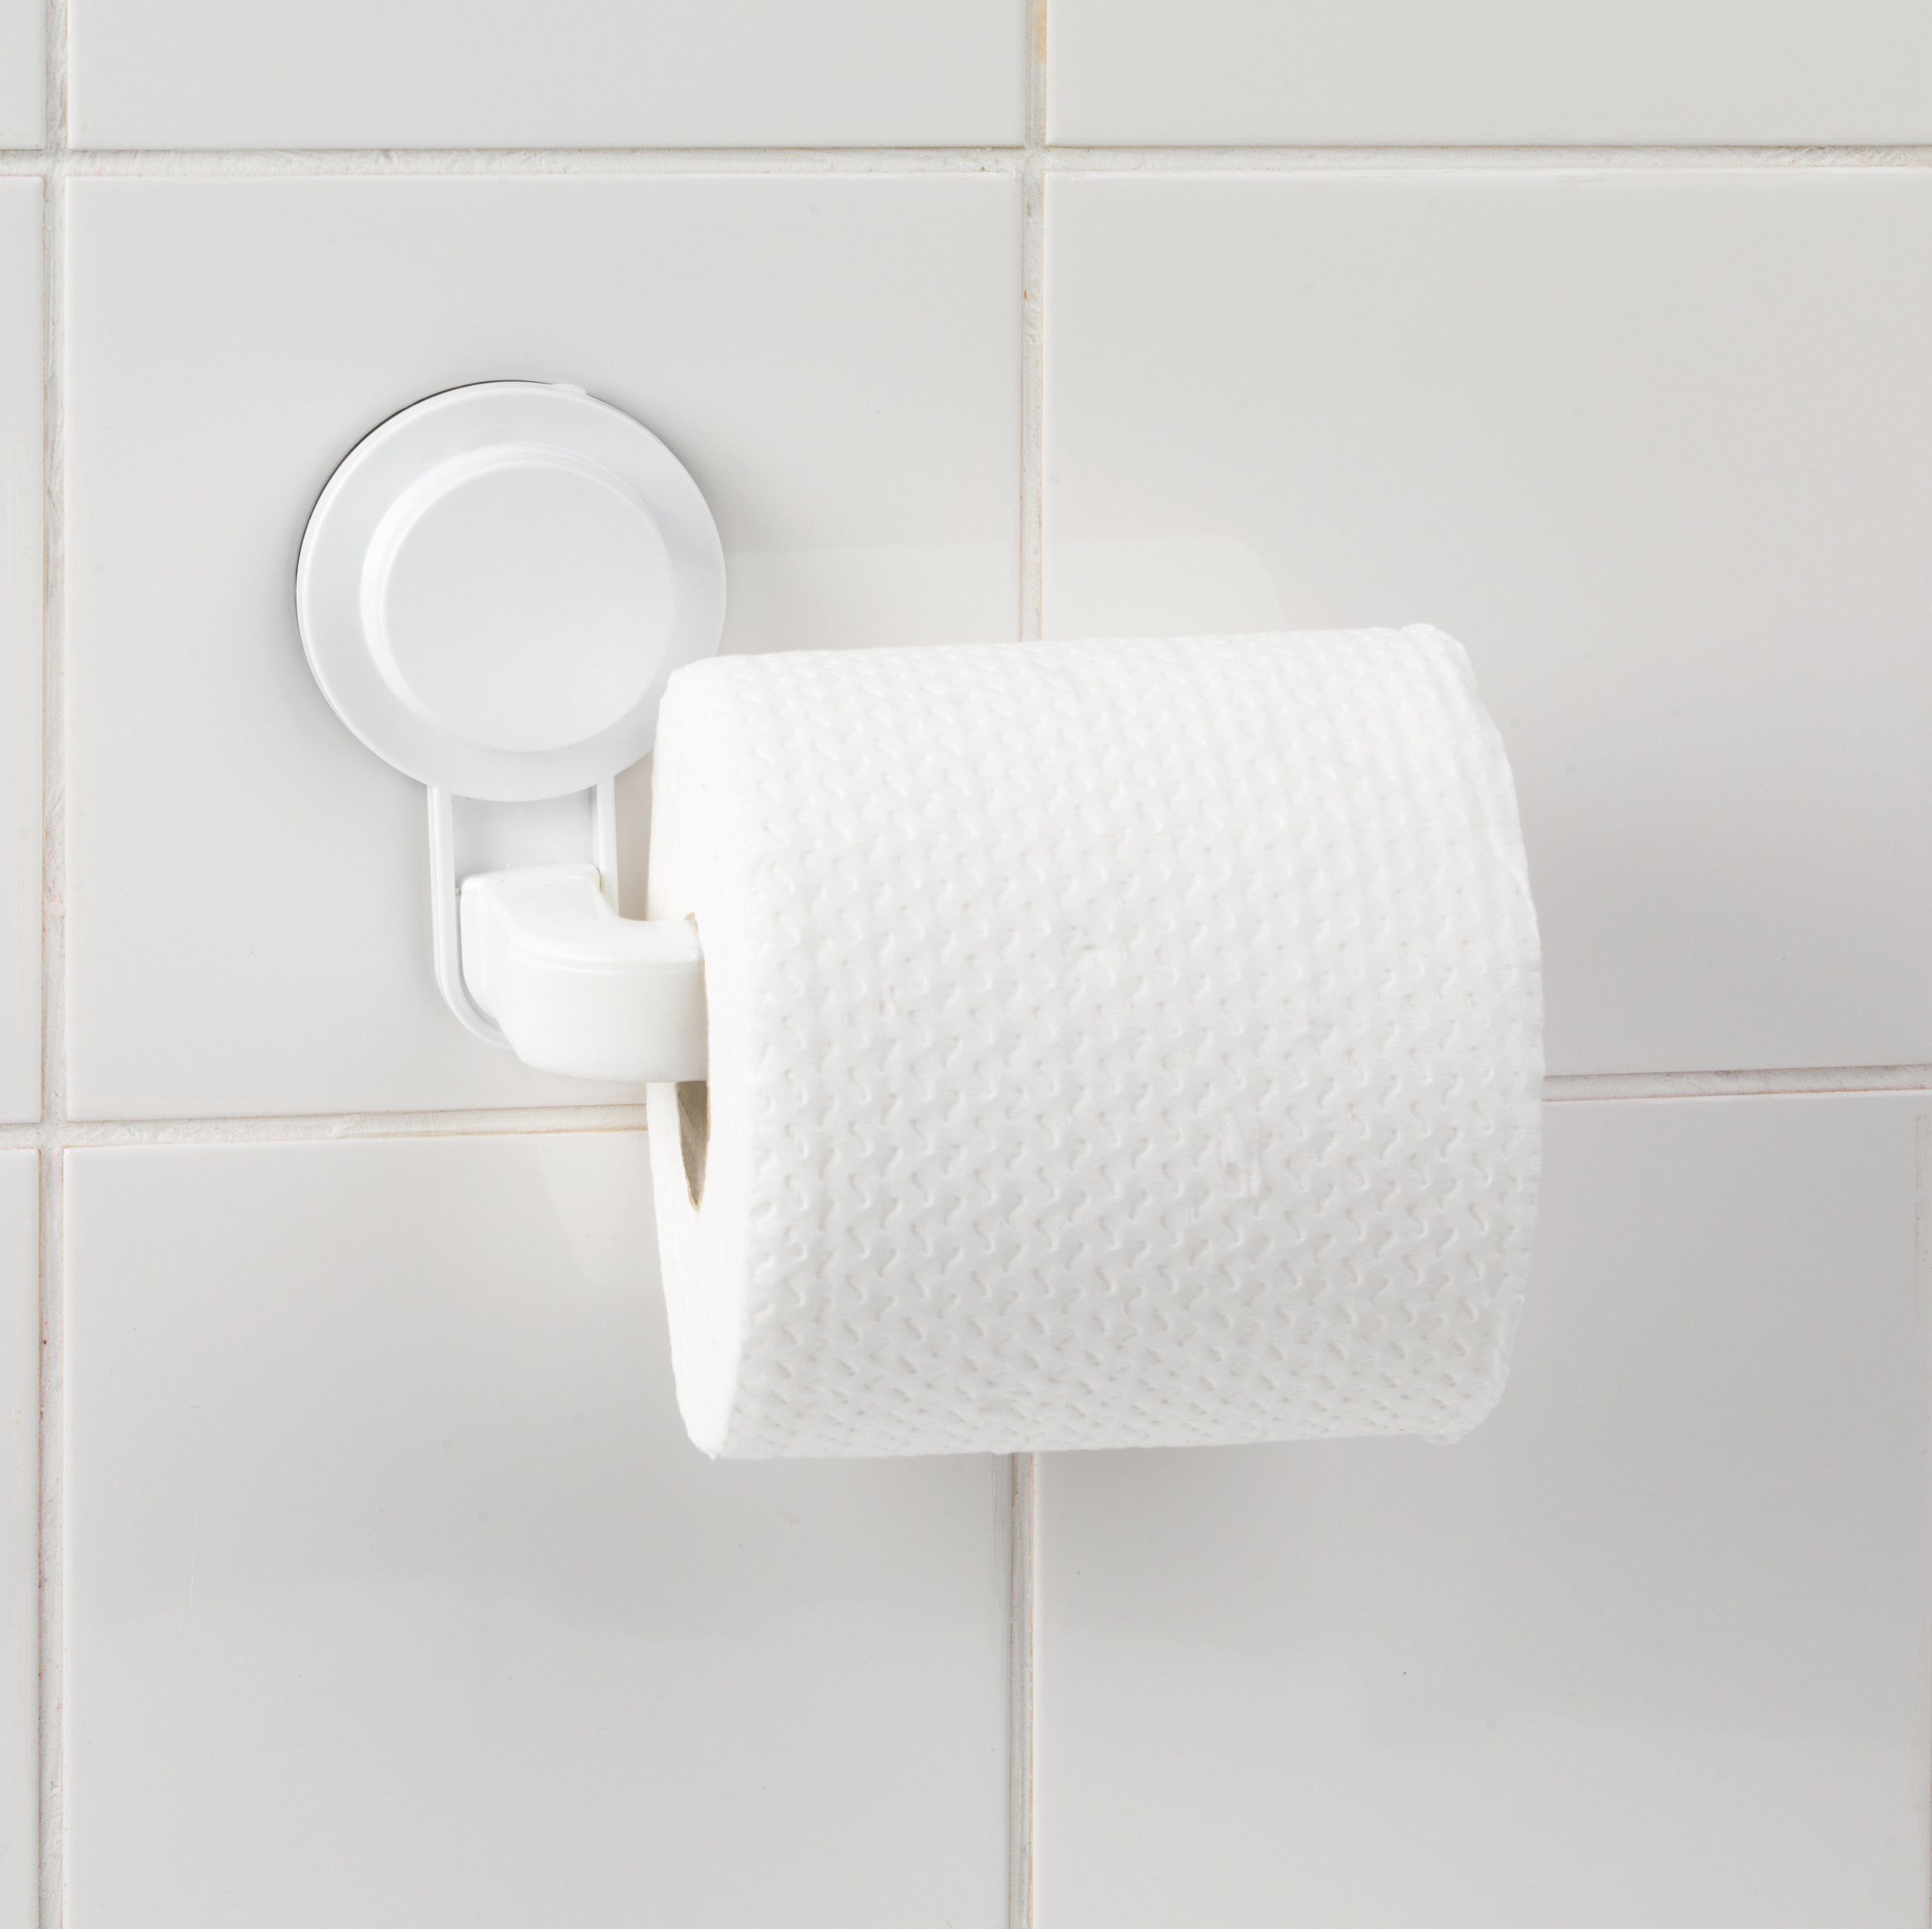 Beldray Suction Toilet Roll Holder Abs Plastic White